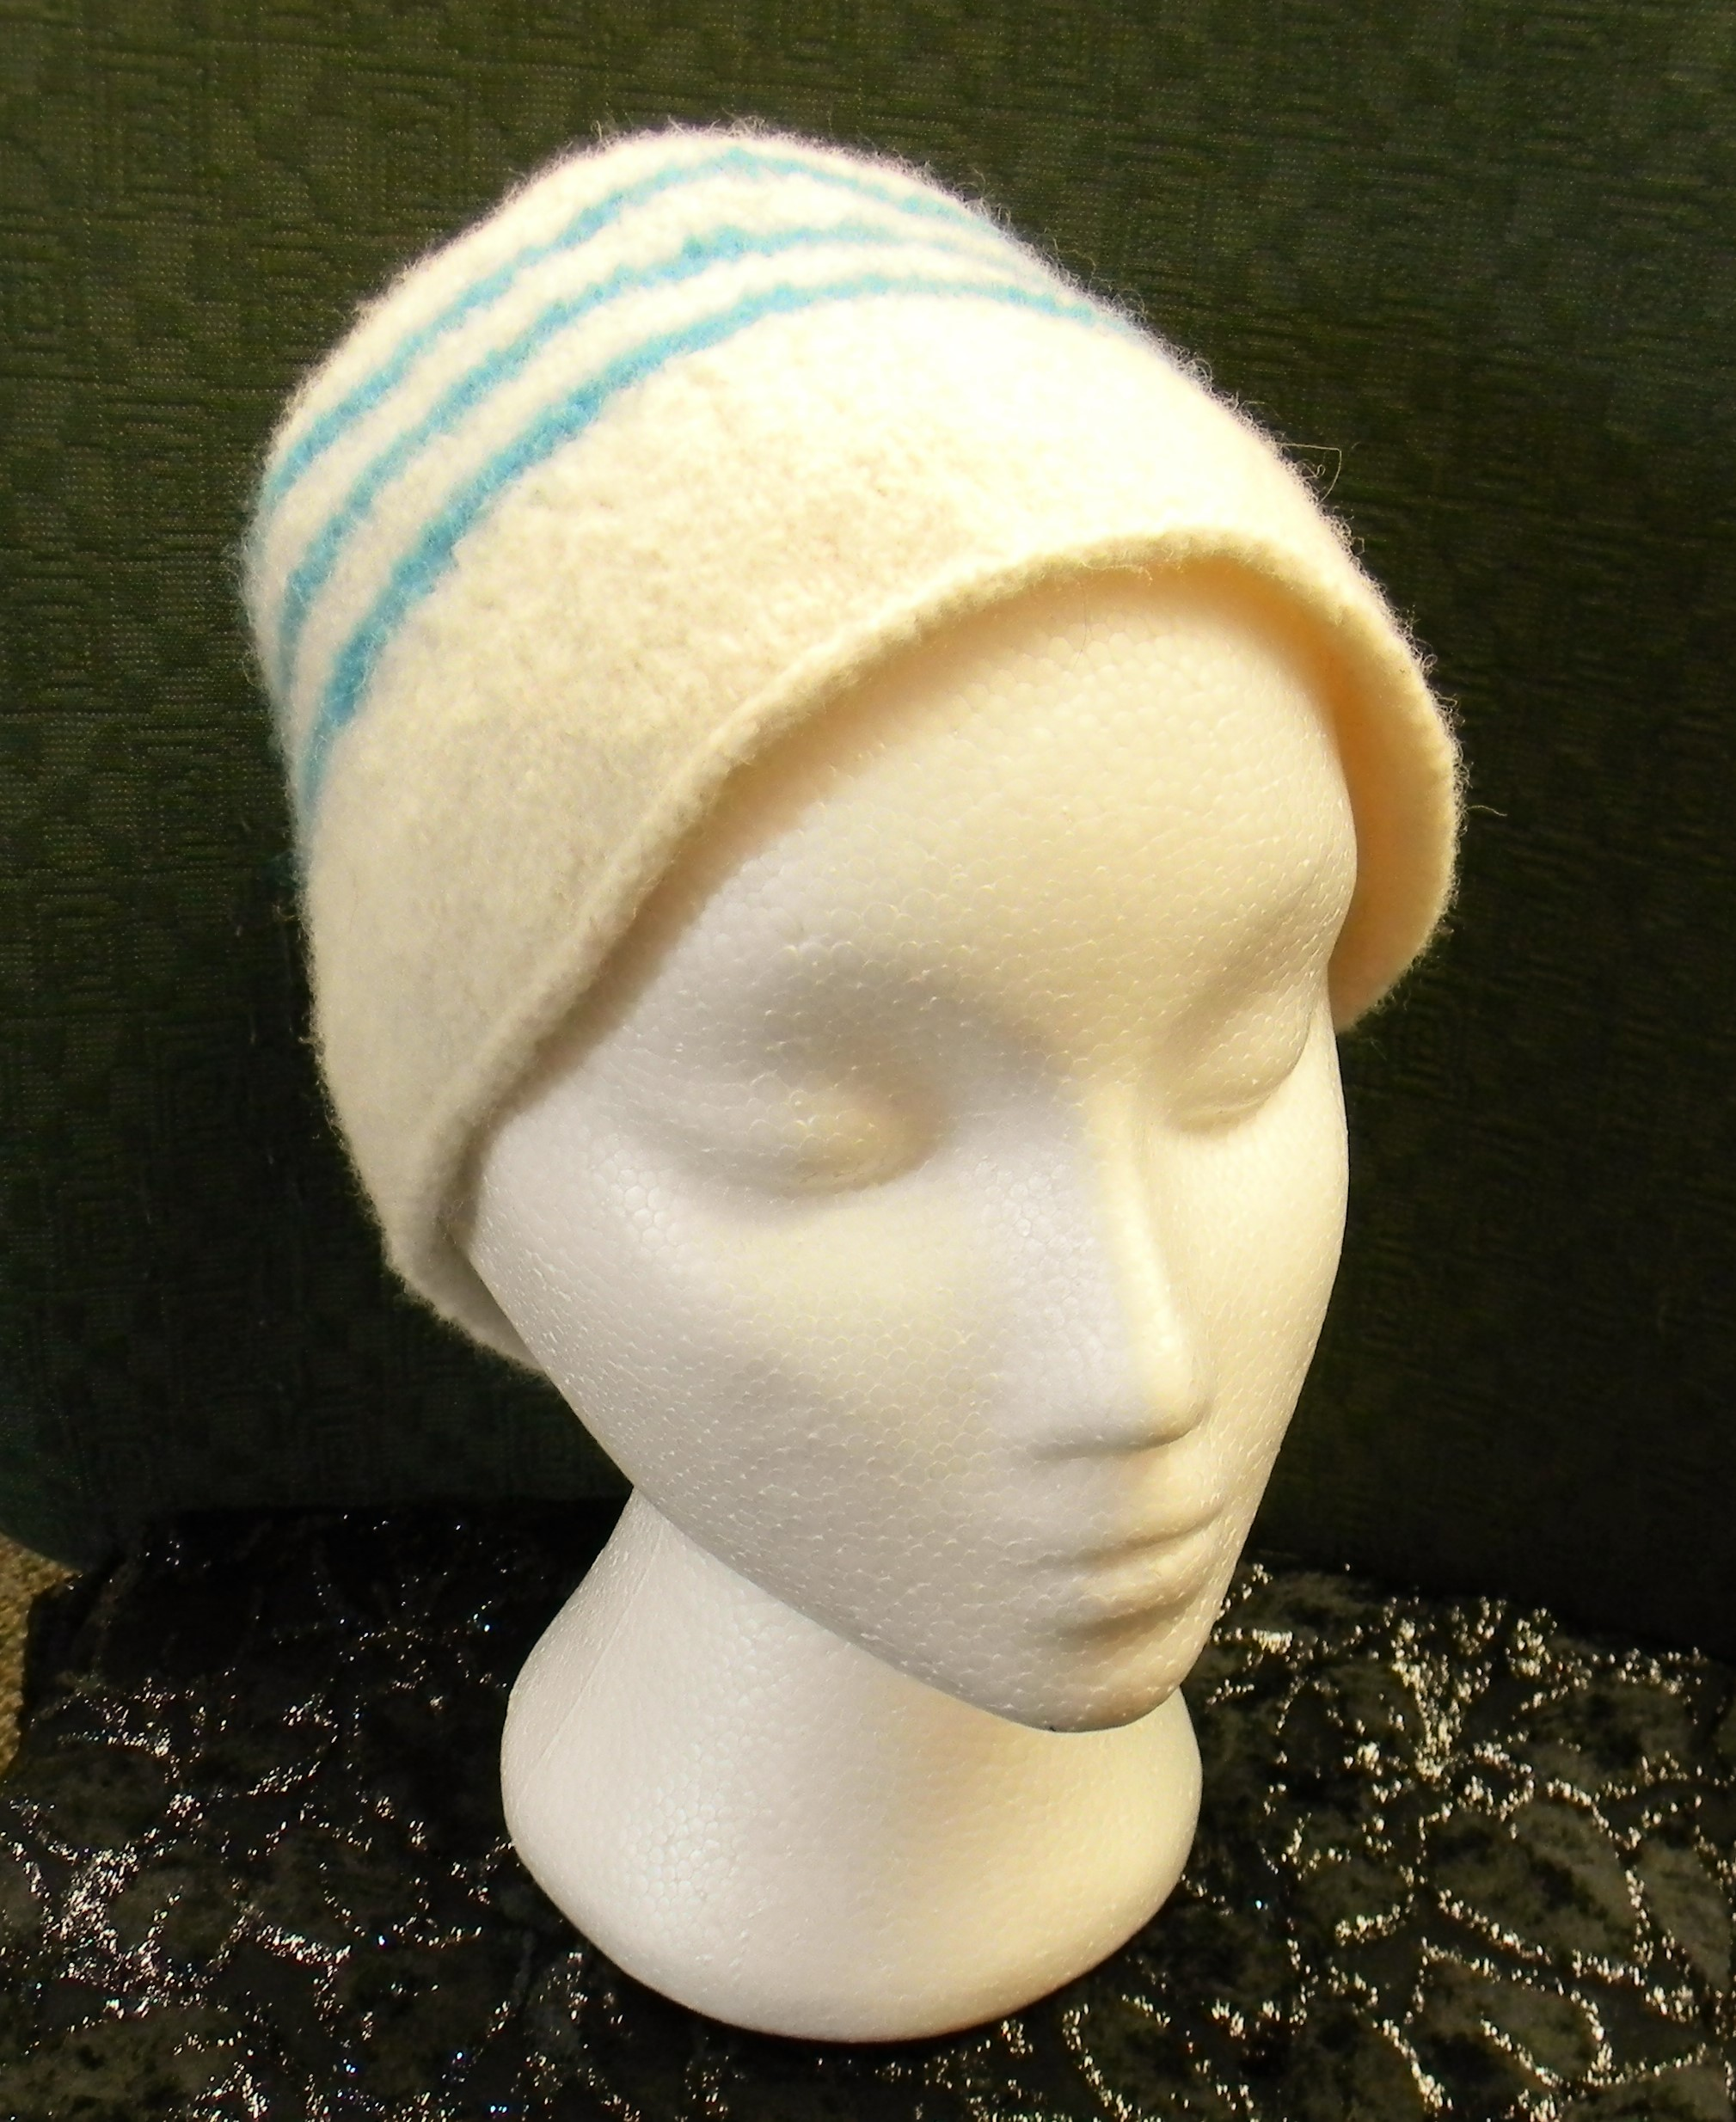 Cream and Turquoise Striped Felted Wool Beanie Style Hat Hand Knit by Kathy  Felker 0ee544f85d2